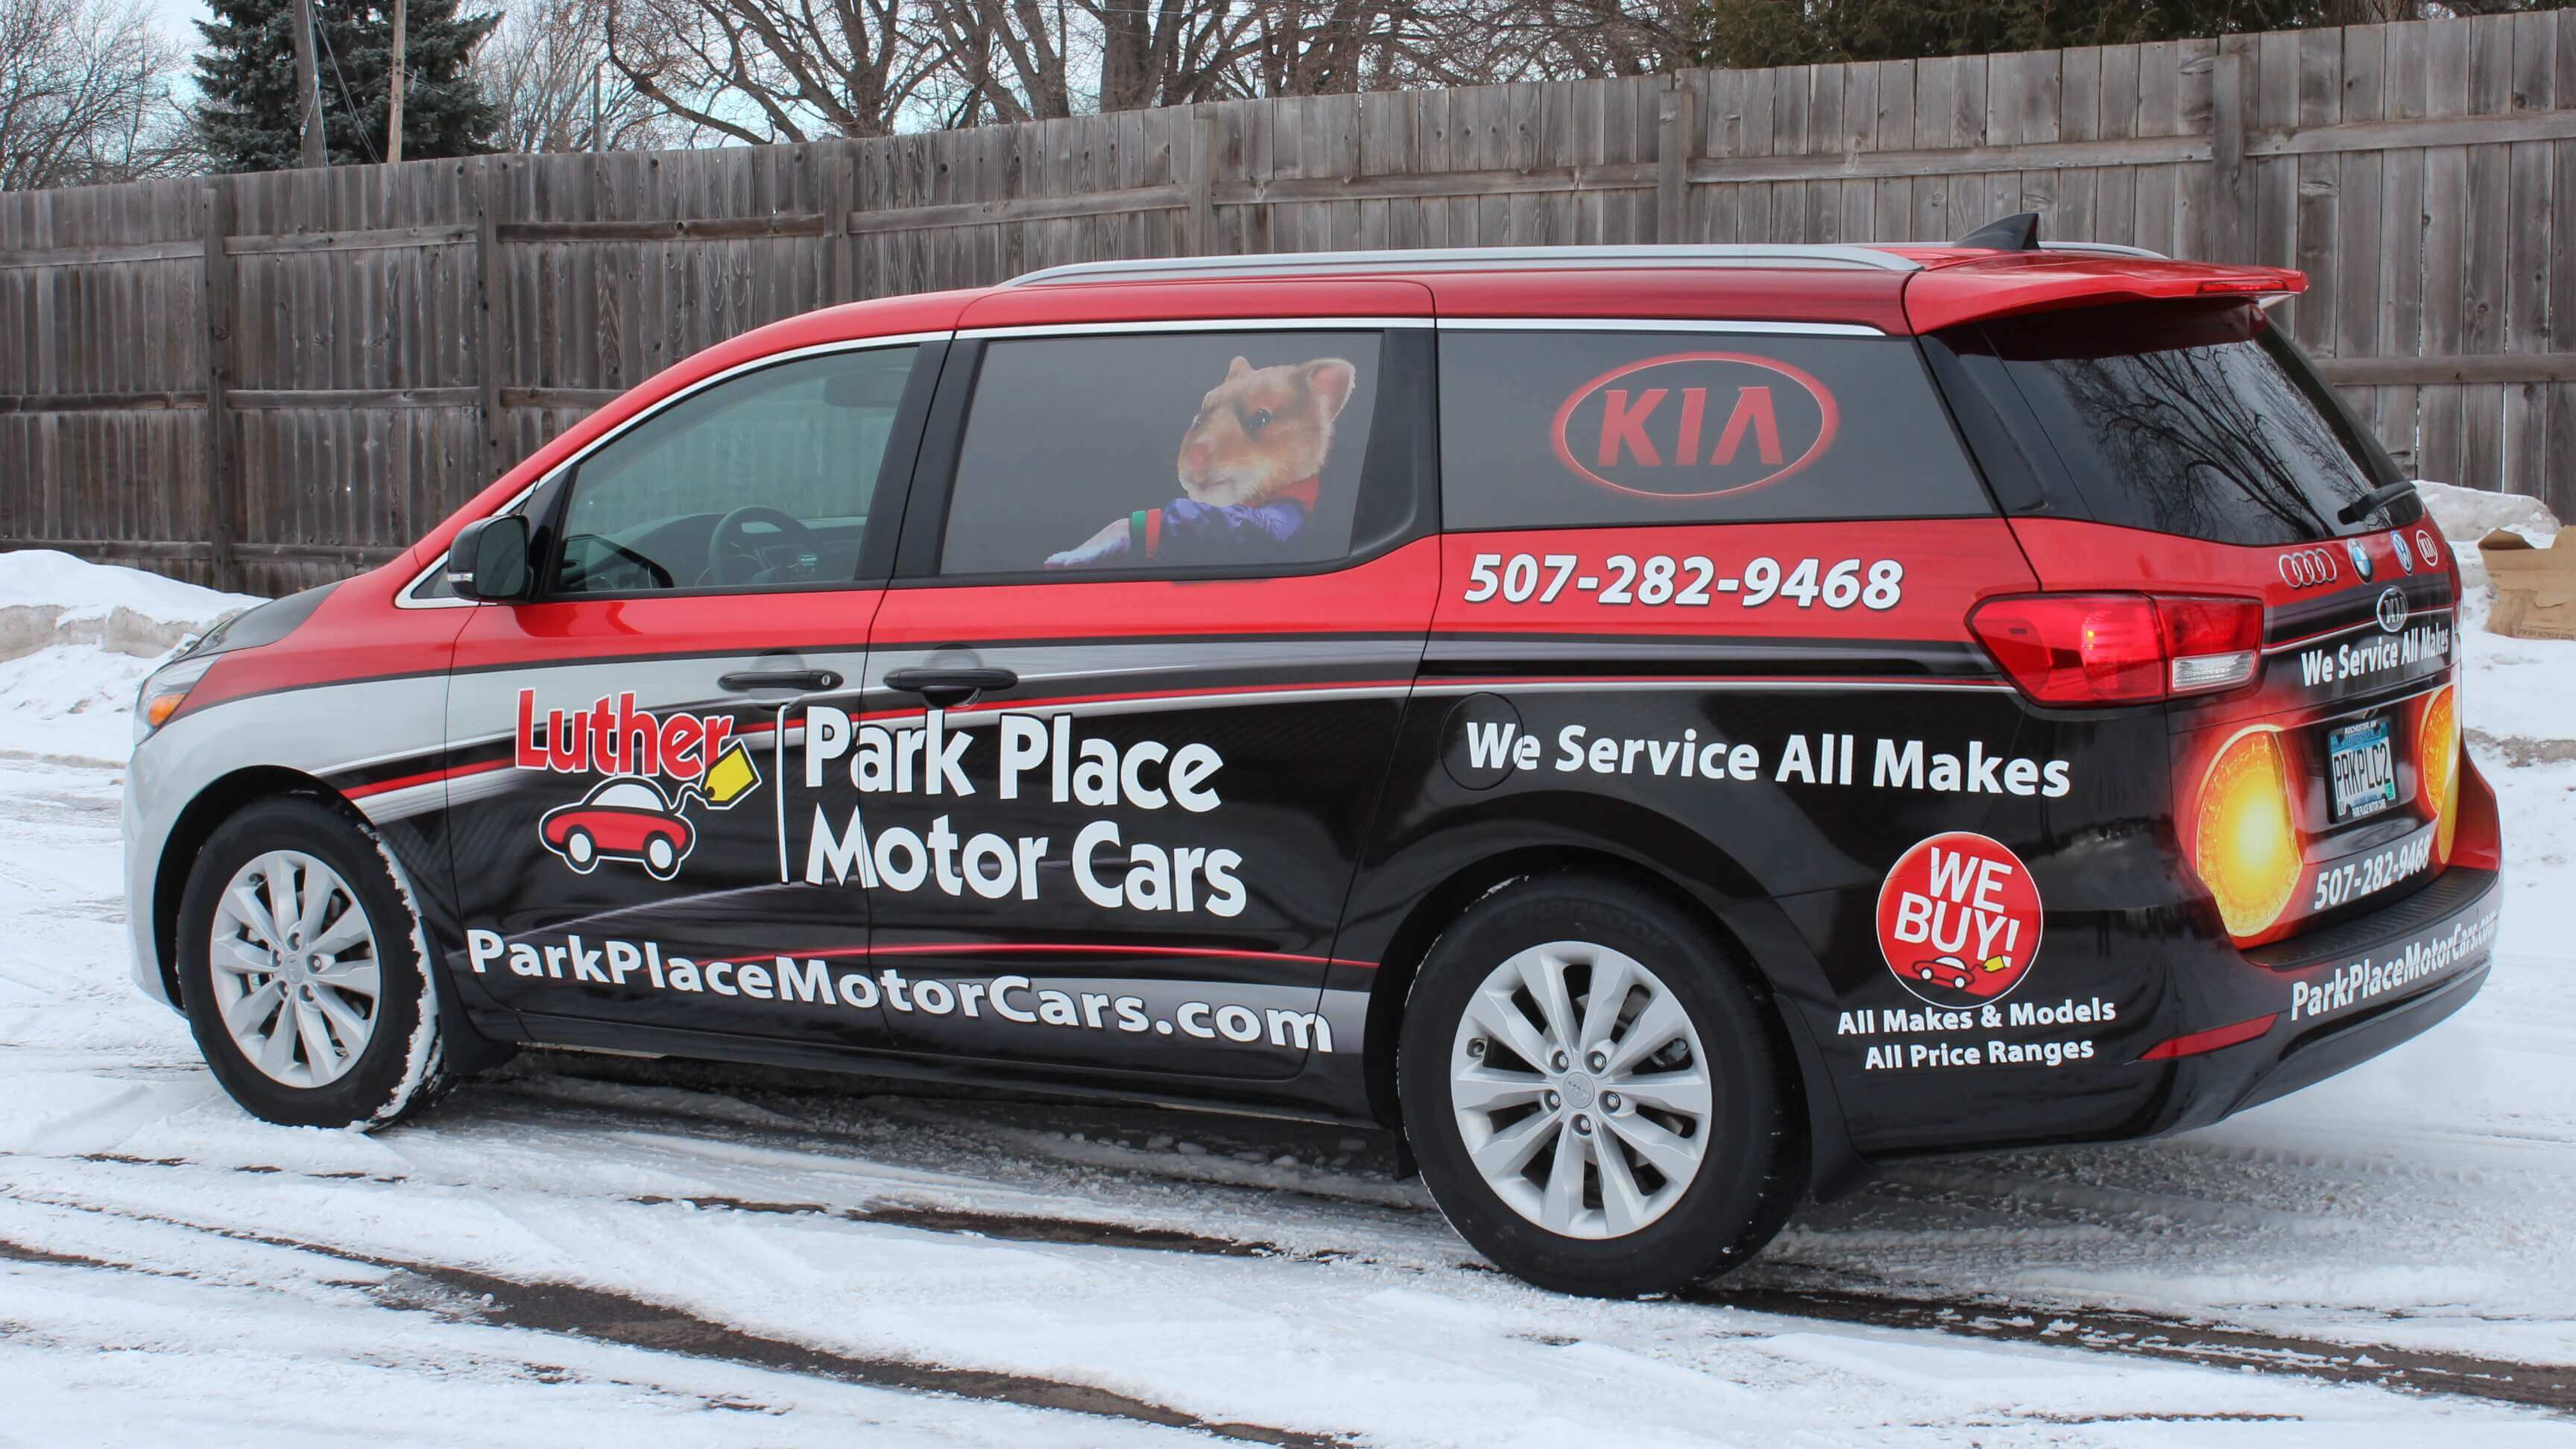 Luther Park Place Motors Vehicle Wrap